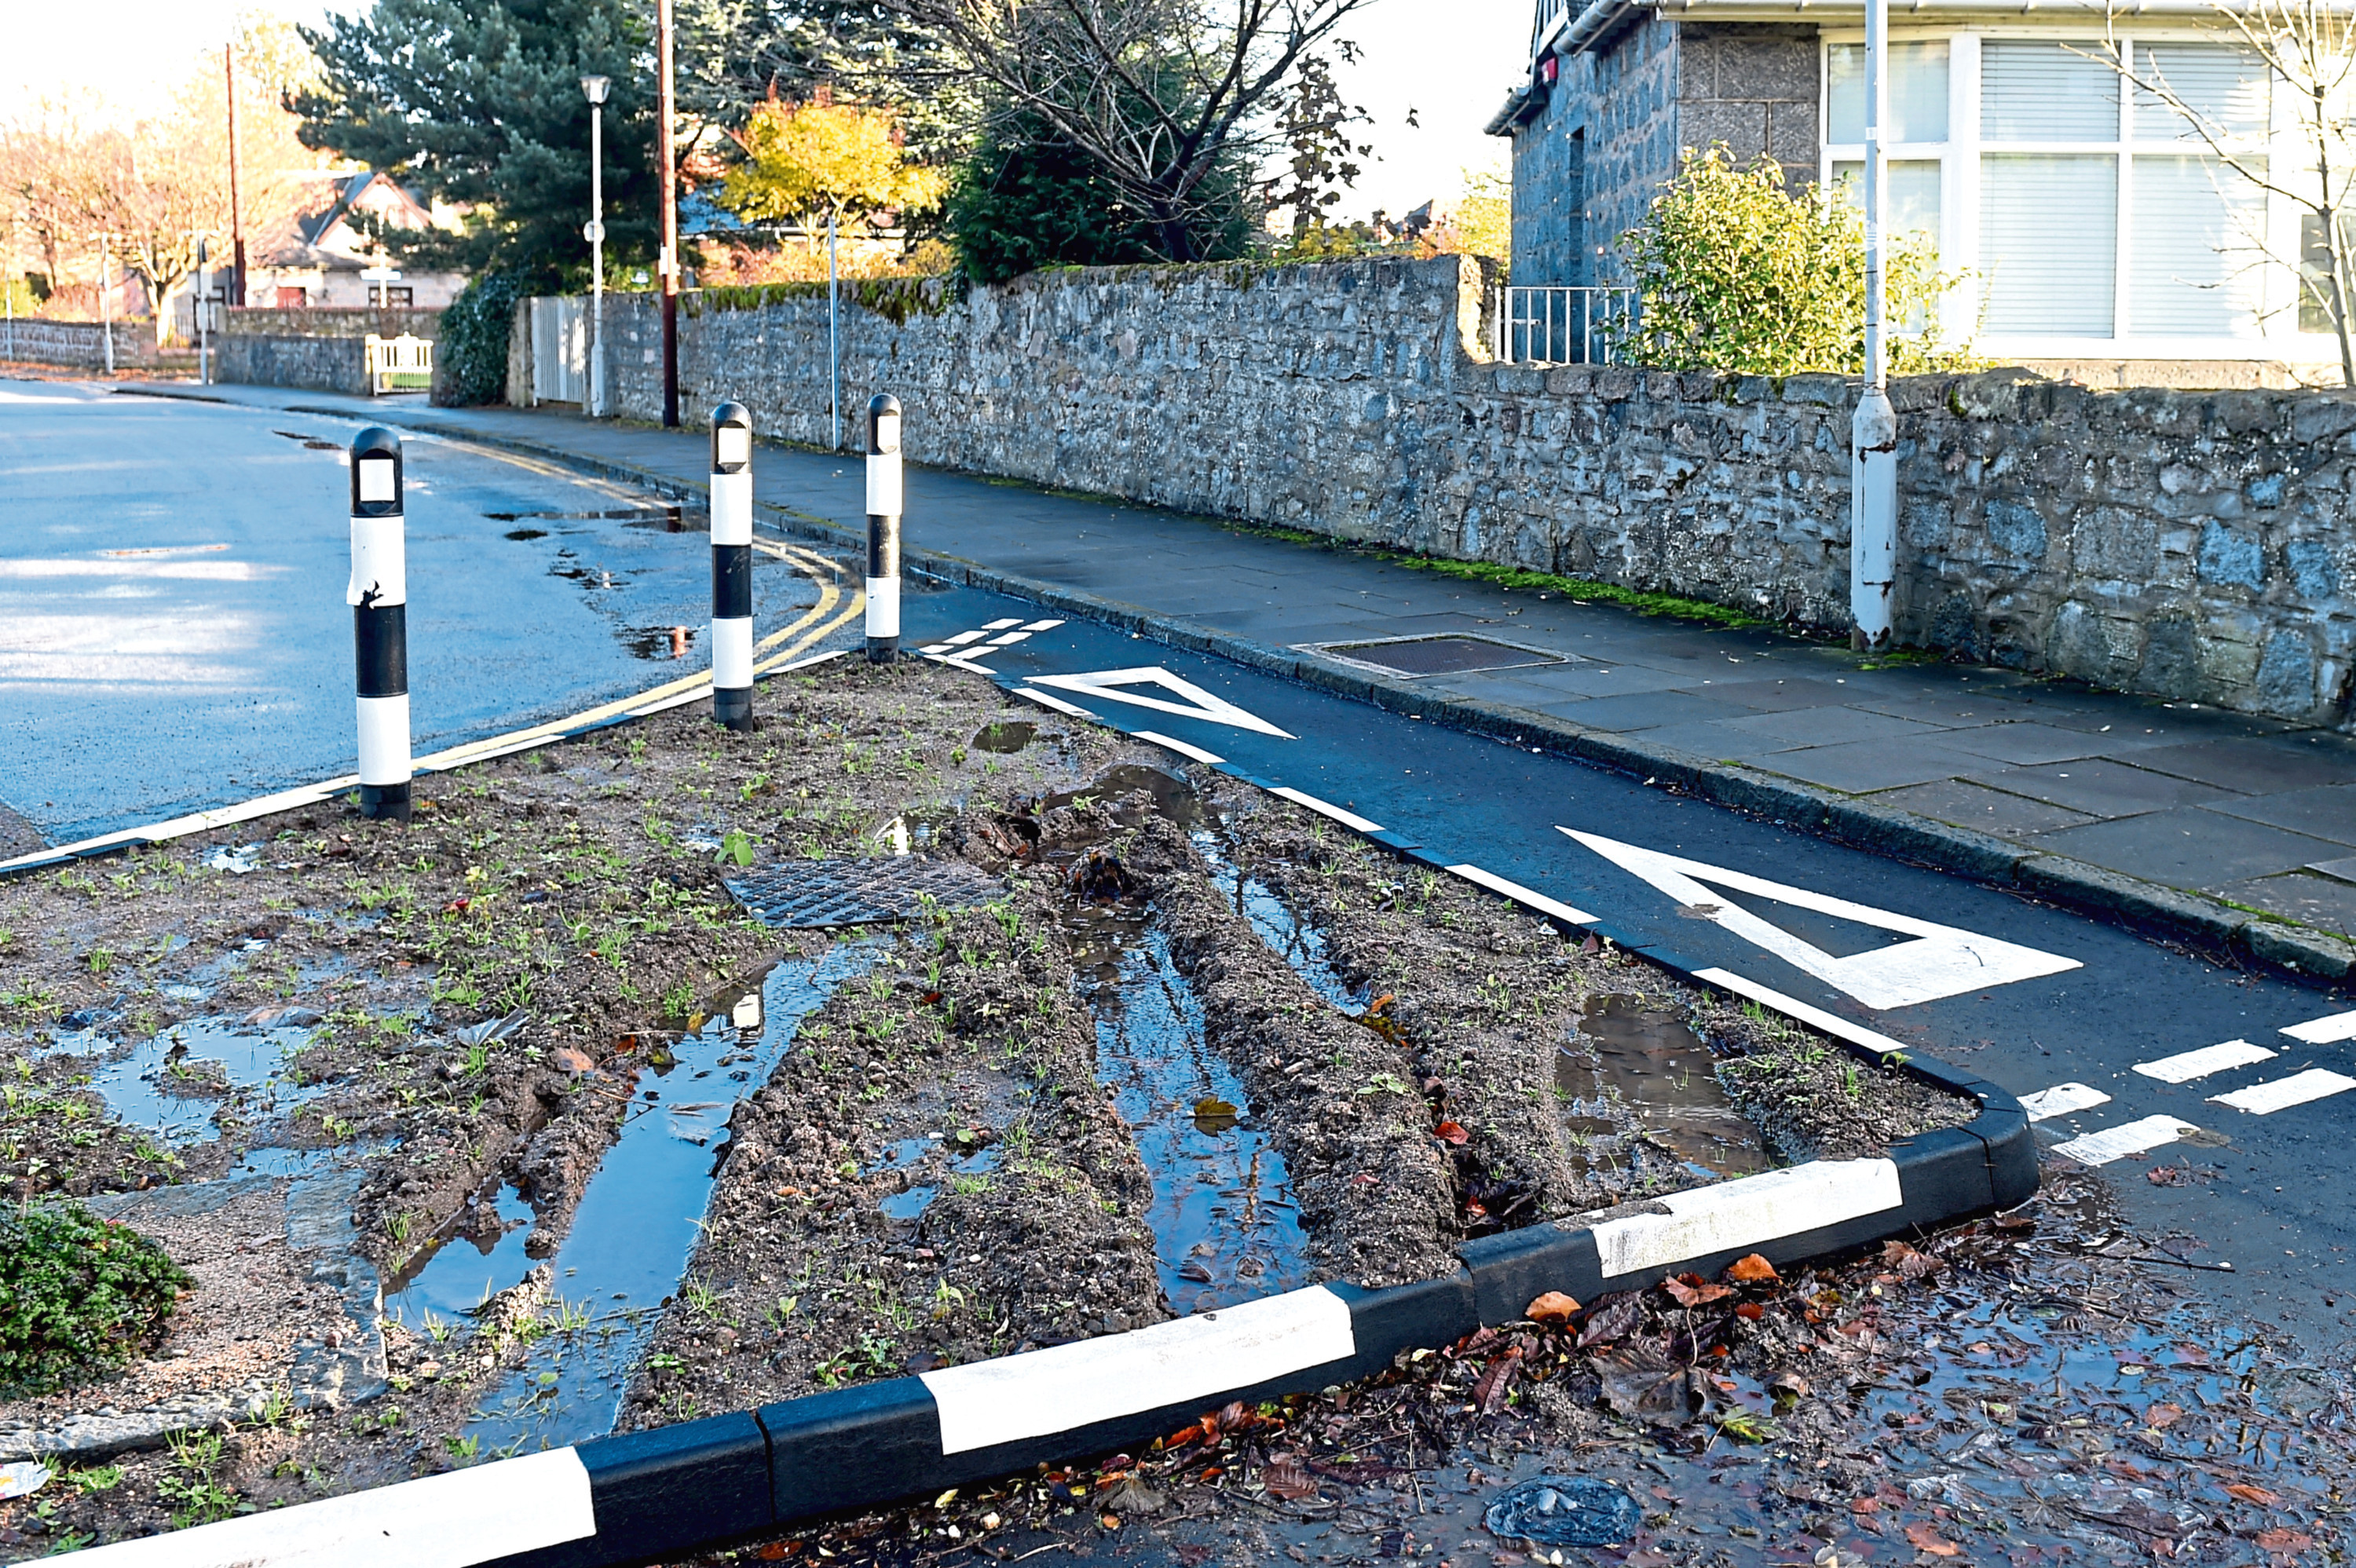 Residents around Don Street and Cheyne Road say drivers have been mounting the replacement island